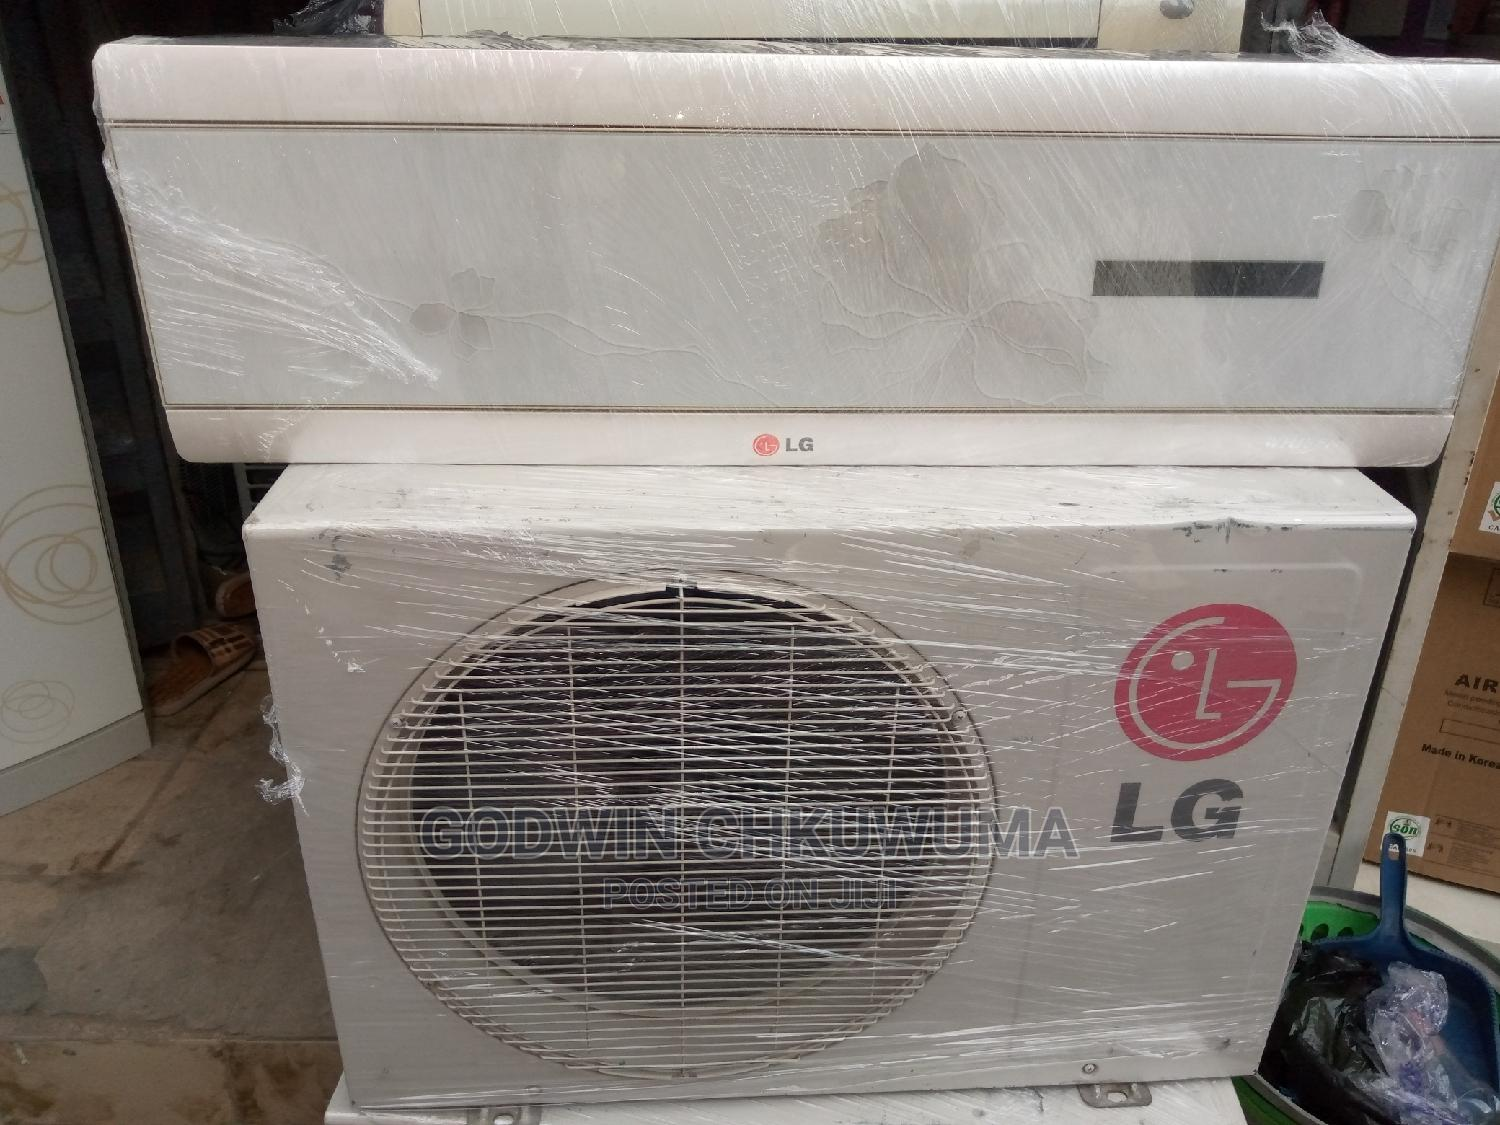 LG AC 1.5h Power: With 1year Warranty Written and Signed.